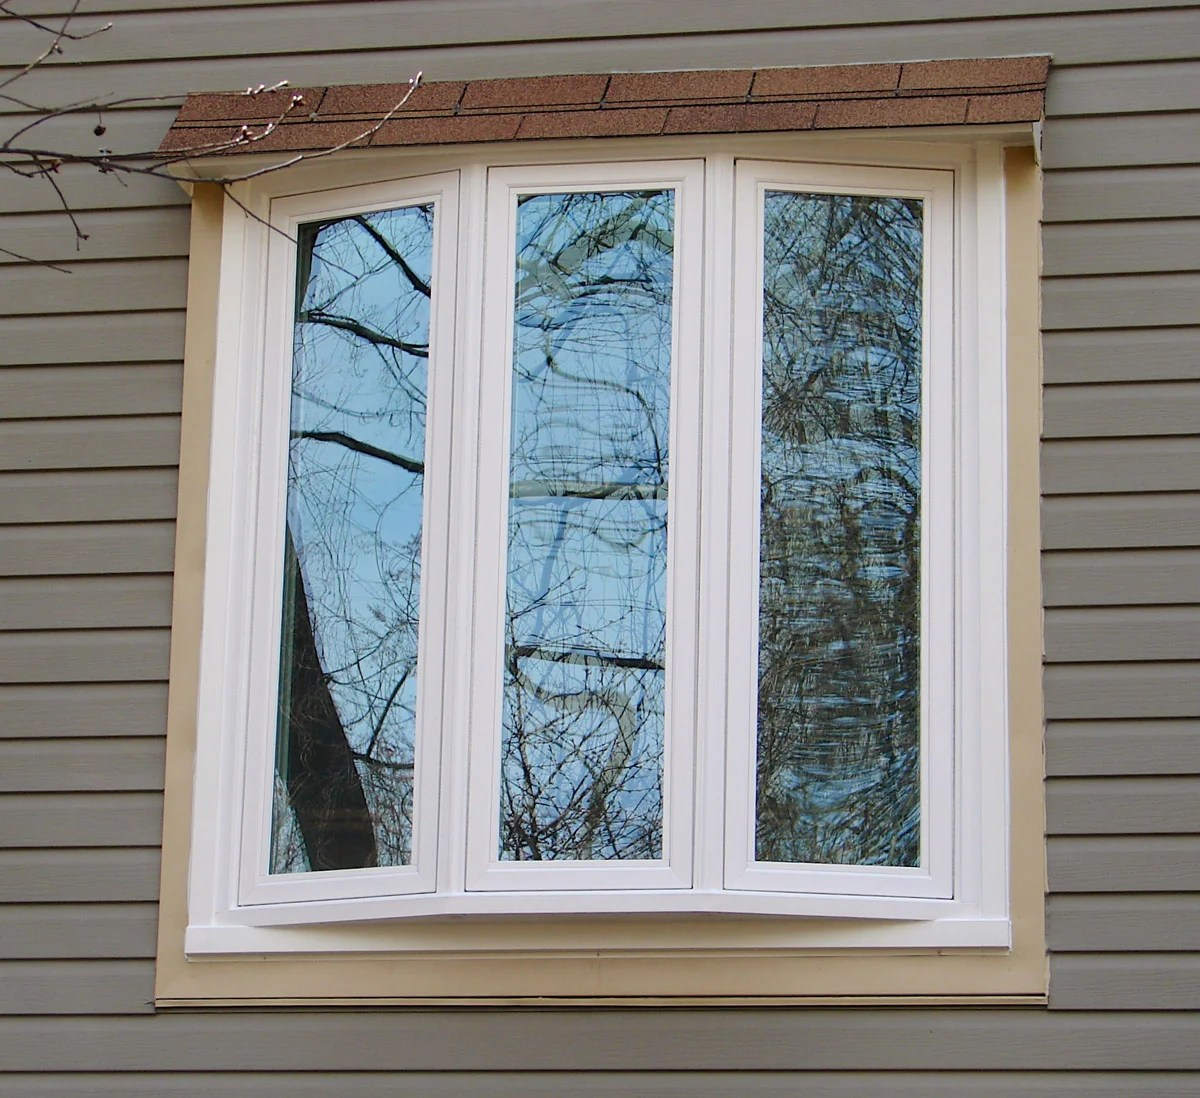 3 Section Bow Window w/ Shed Roof